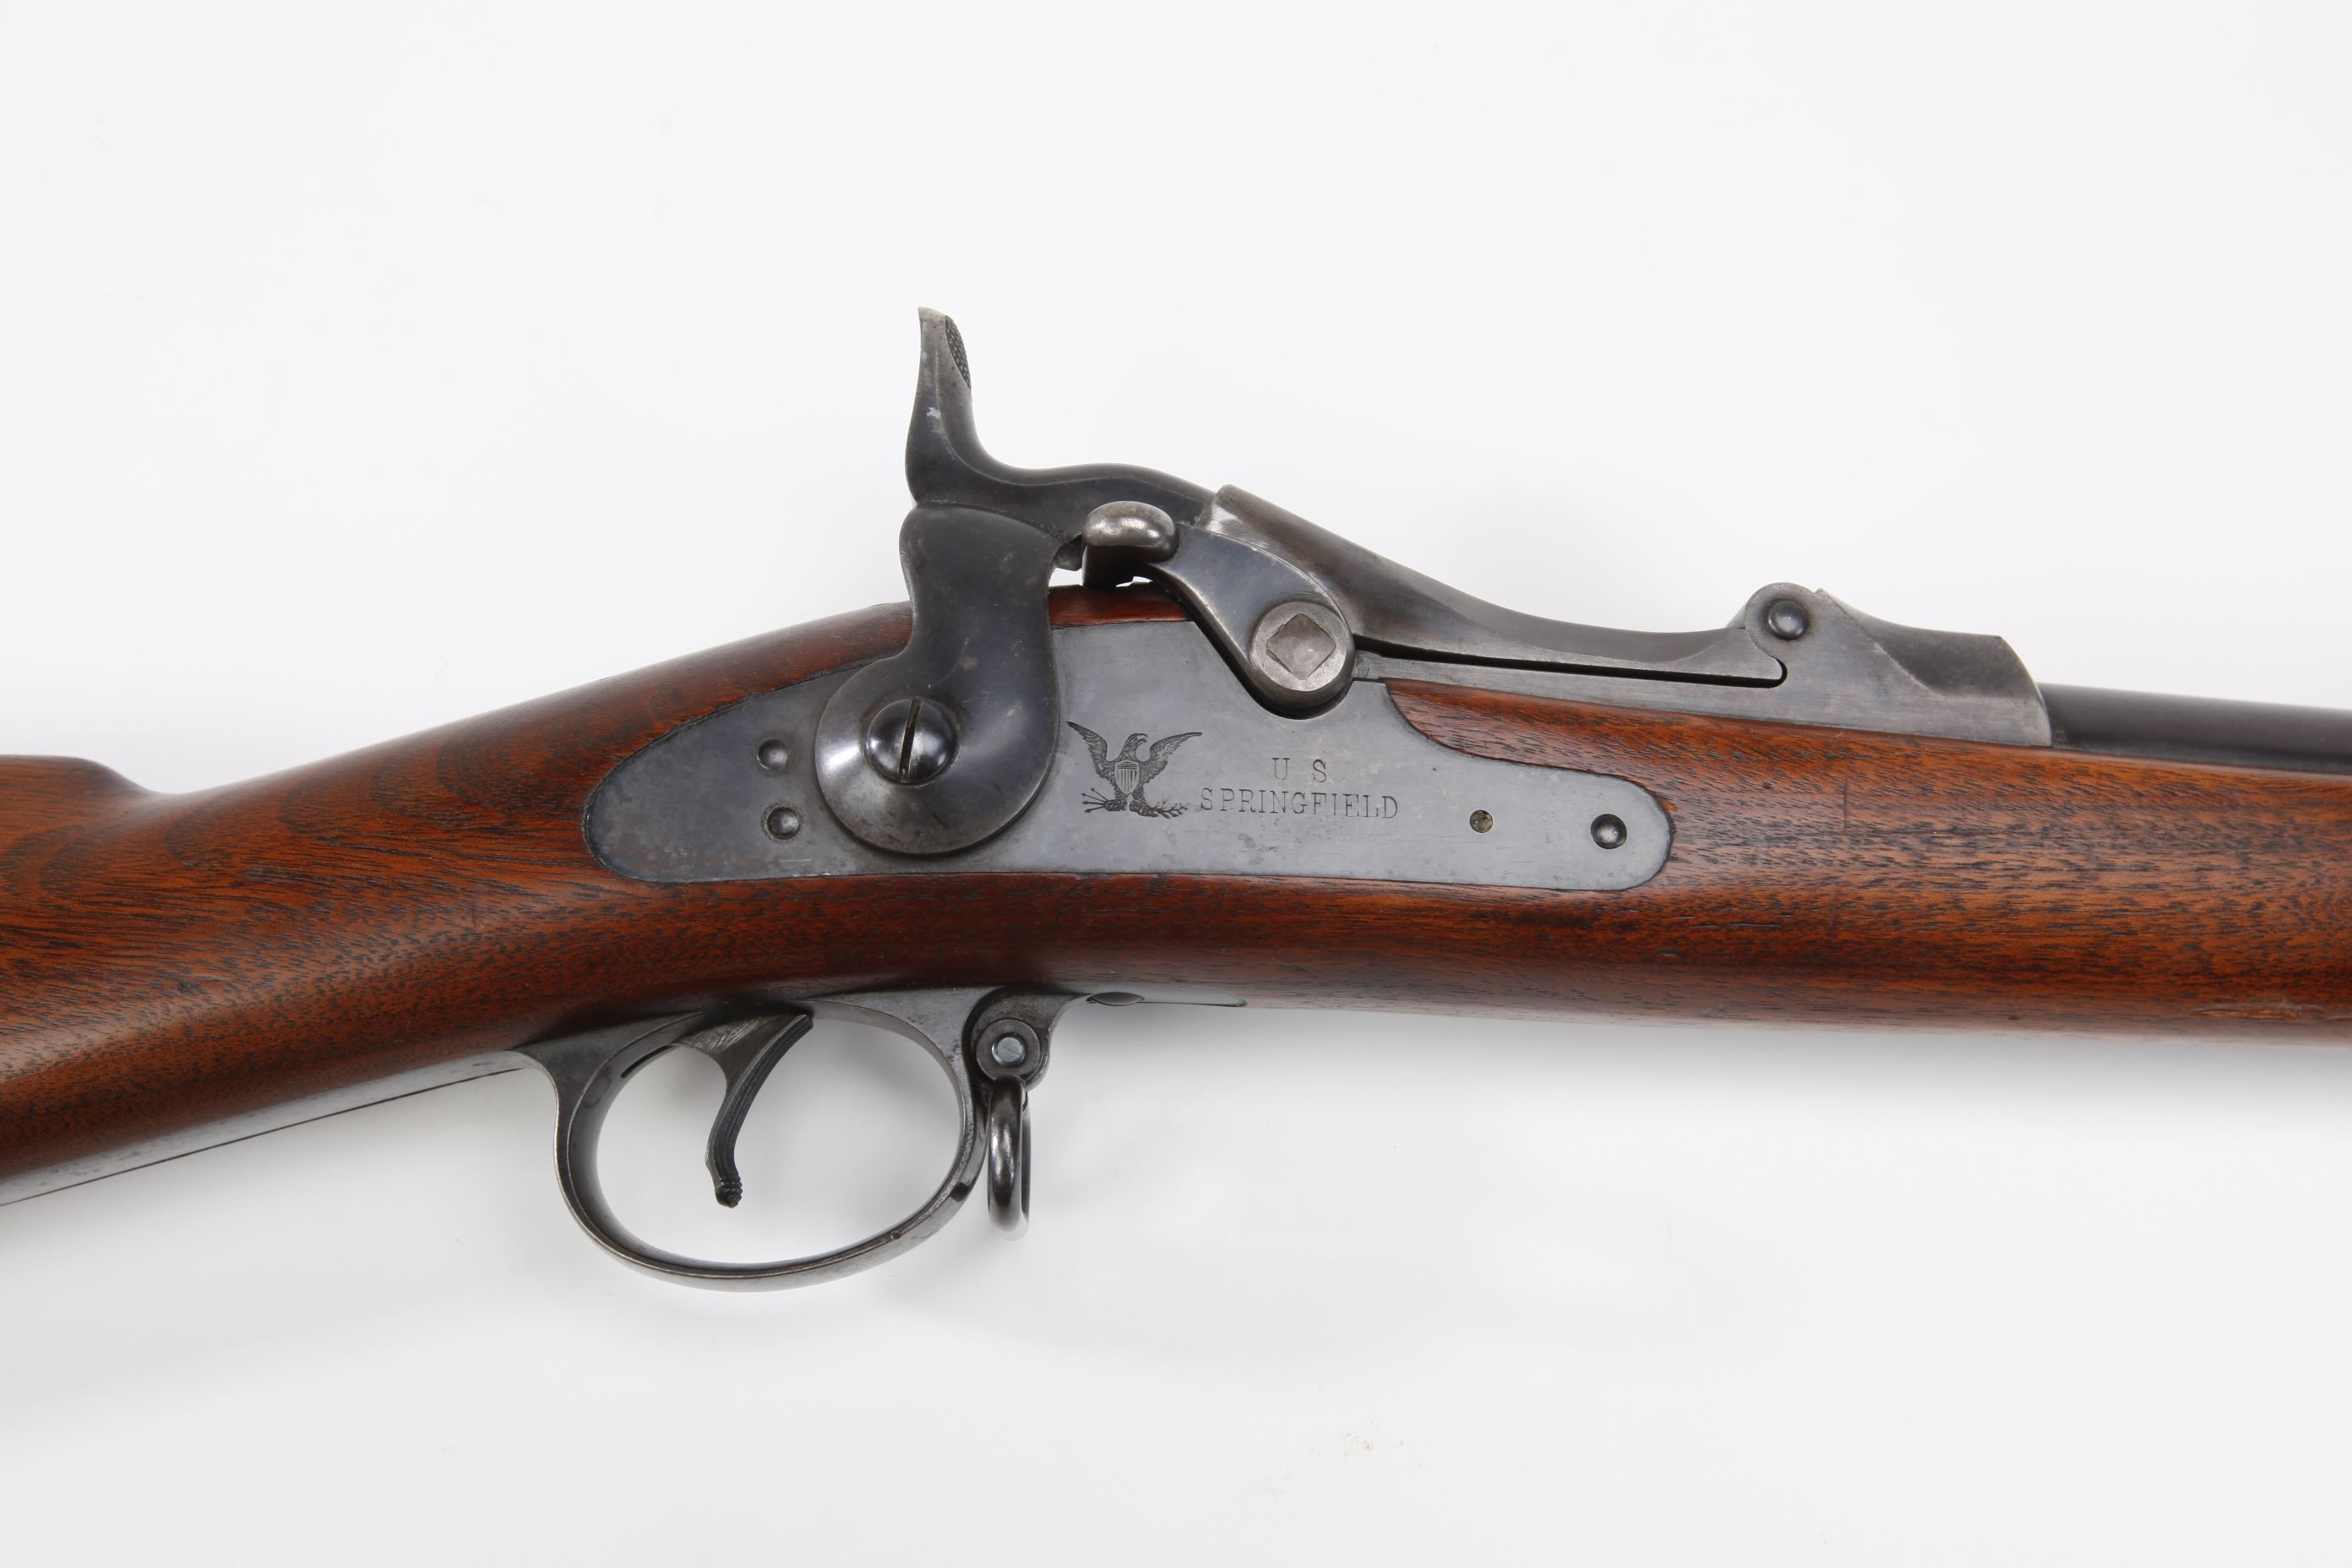 U.S. Springfield Model 1884 Trapdoor Rifle